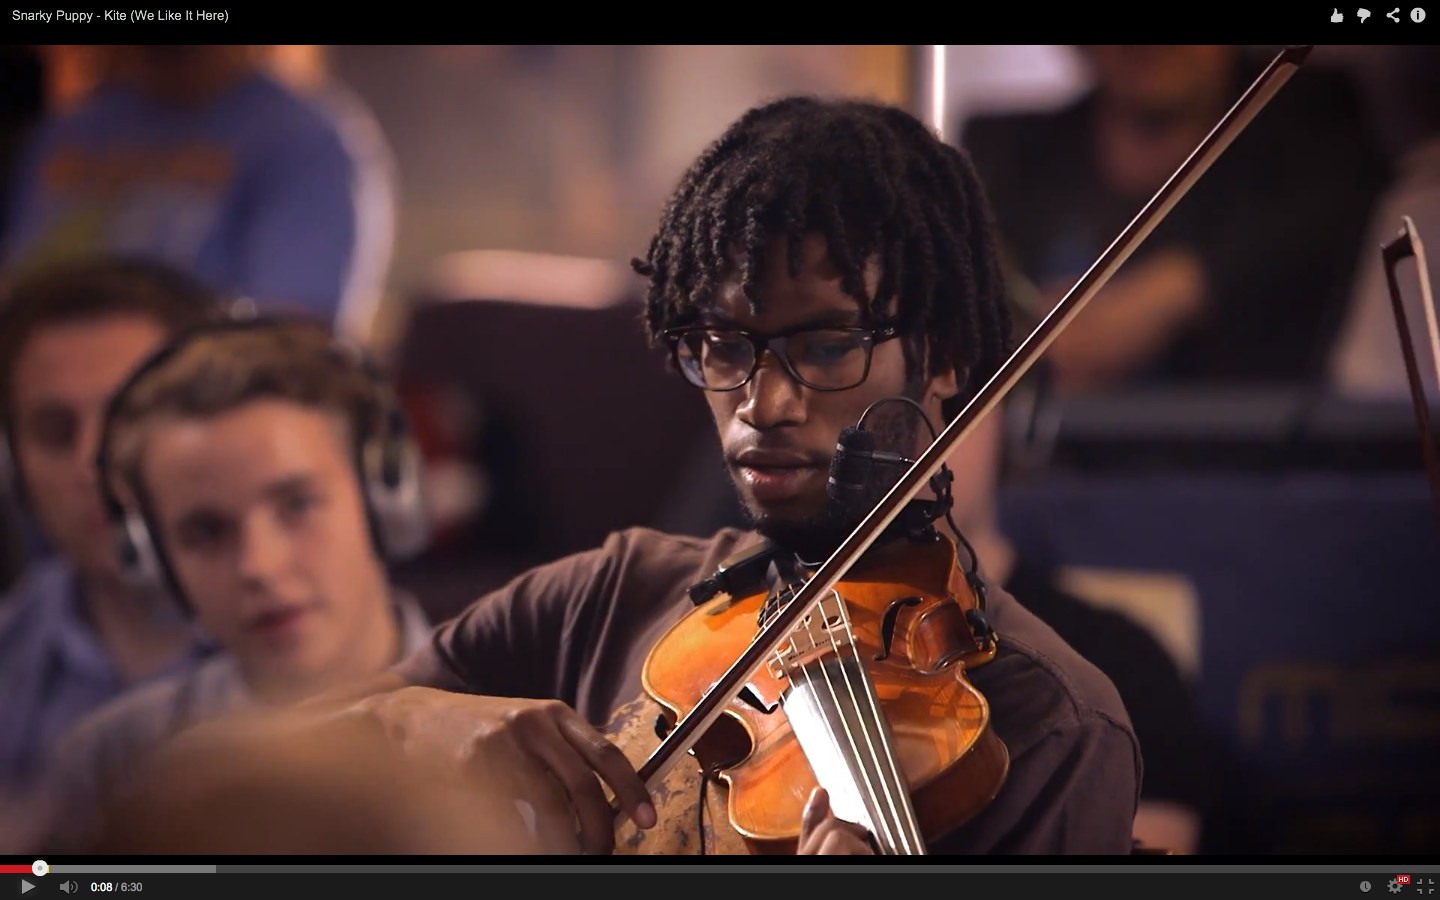 Screenshot to Snarky Puppy - Kite